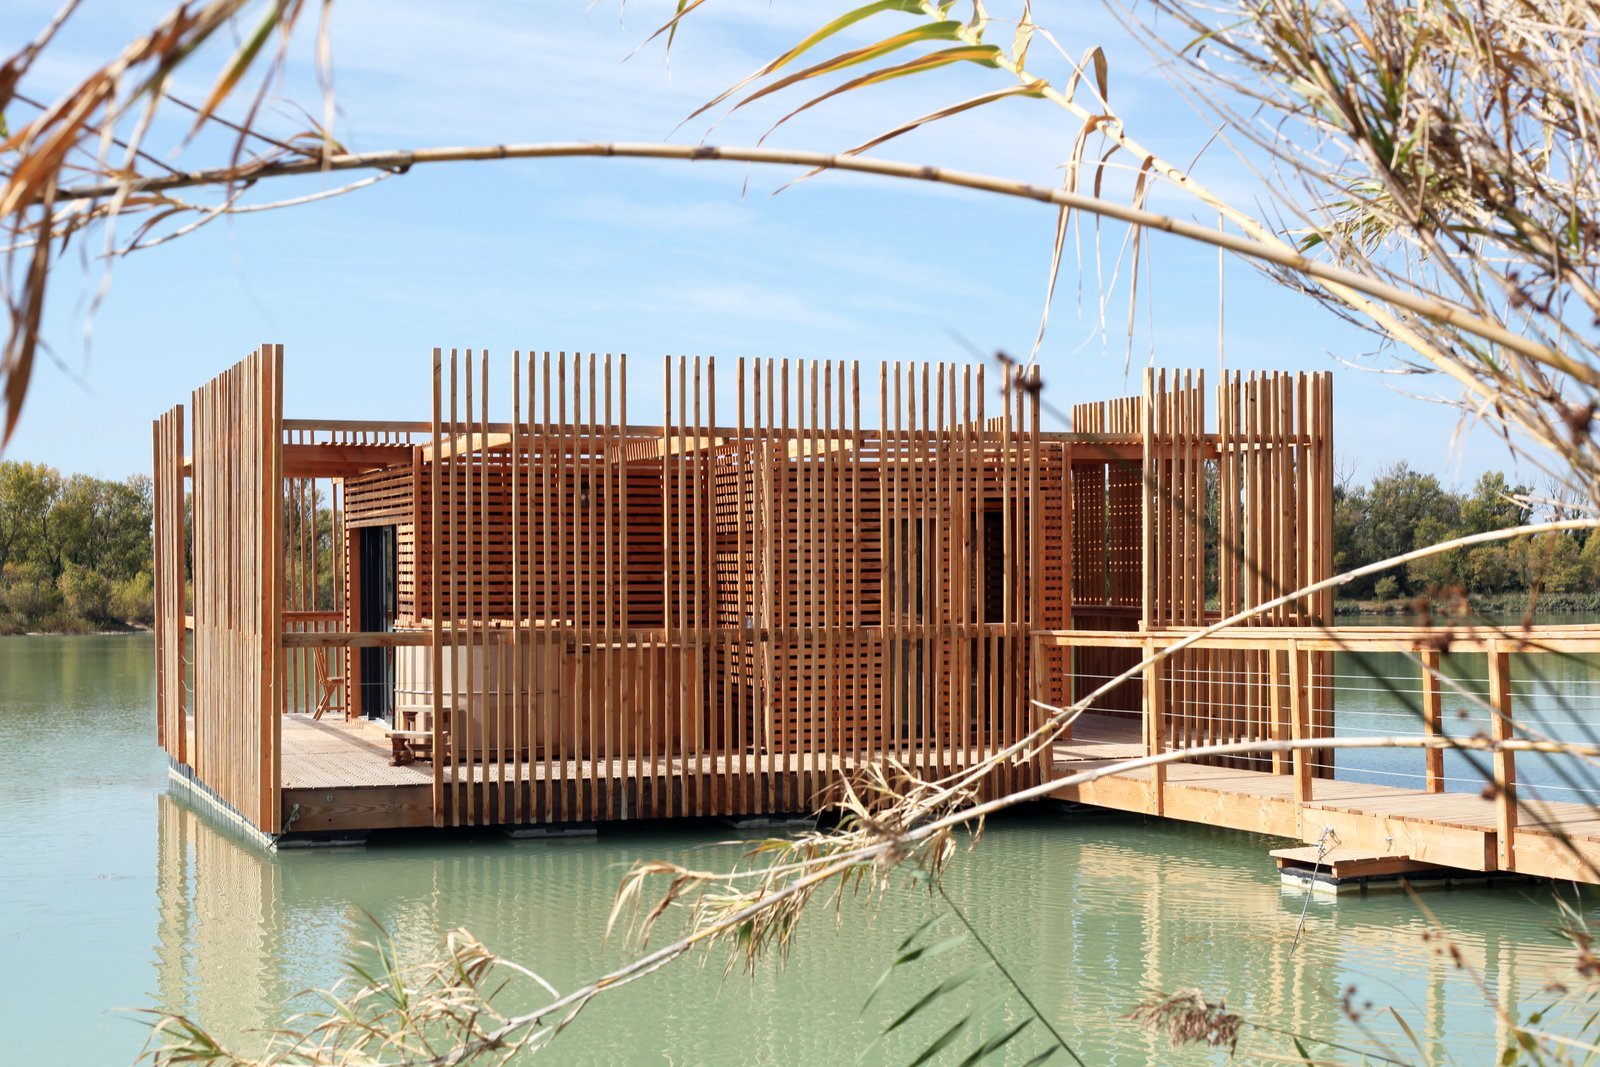 A view of the surrounding wraparound deck and wooden privacy screens.